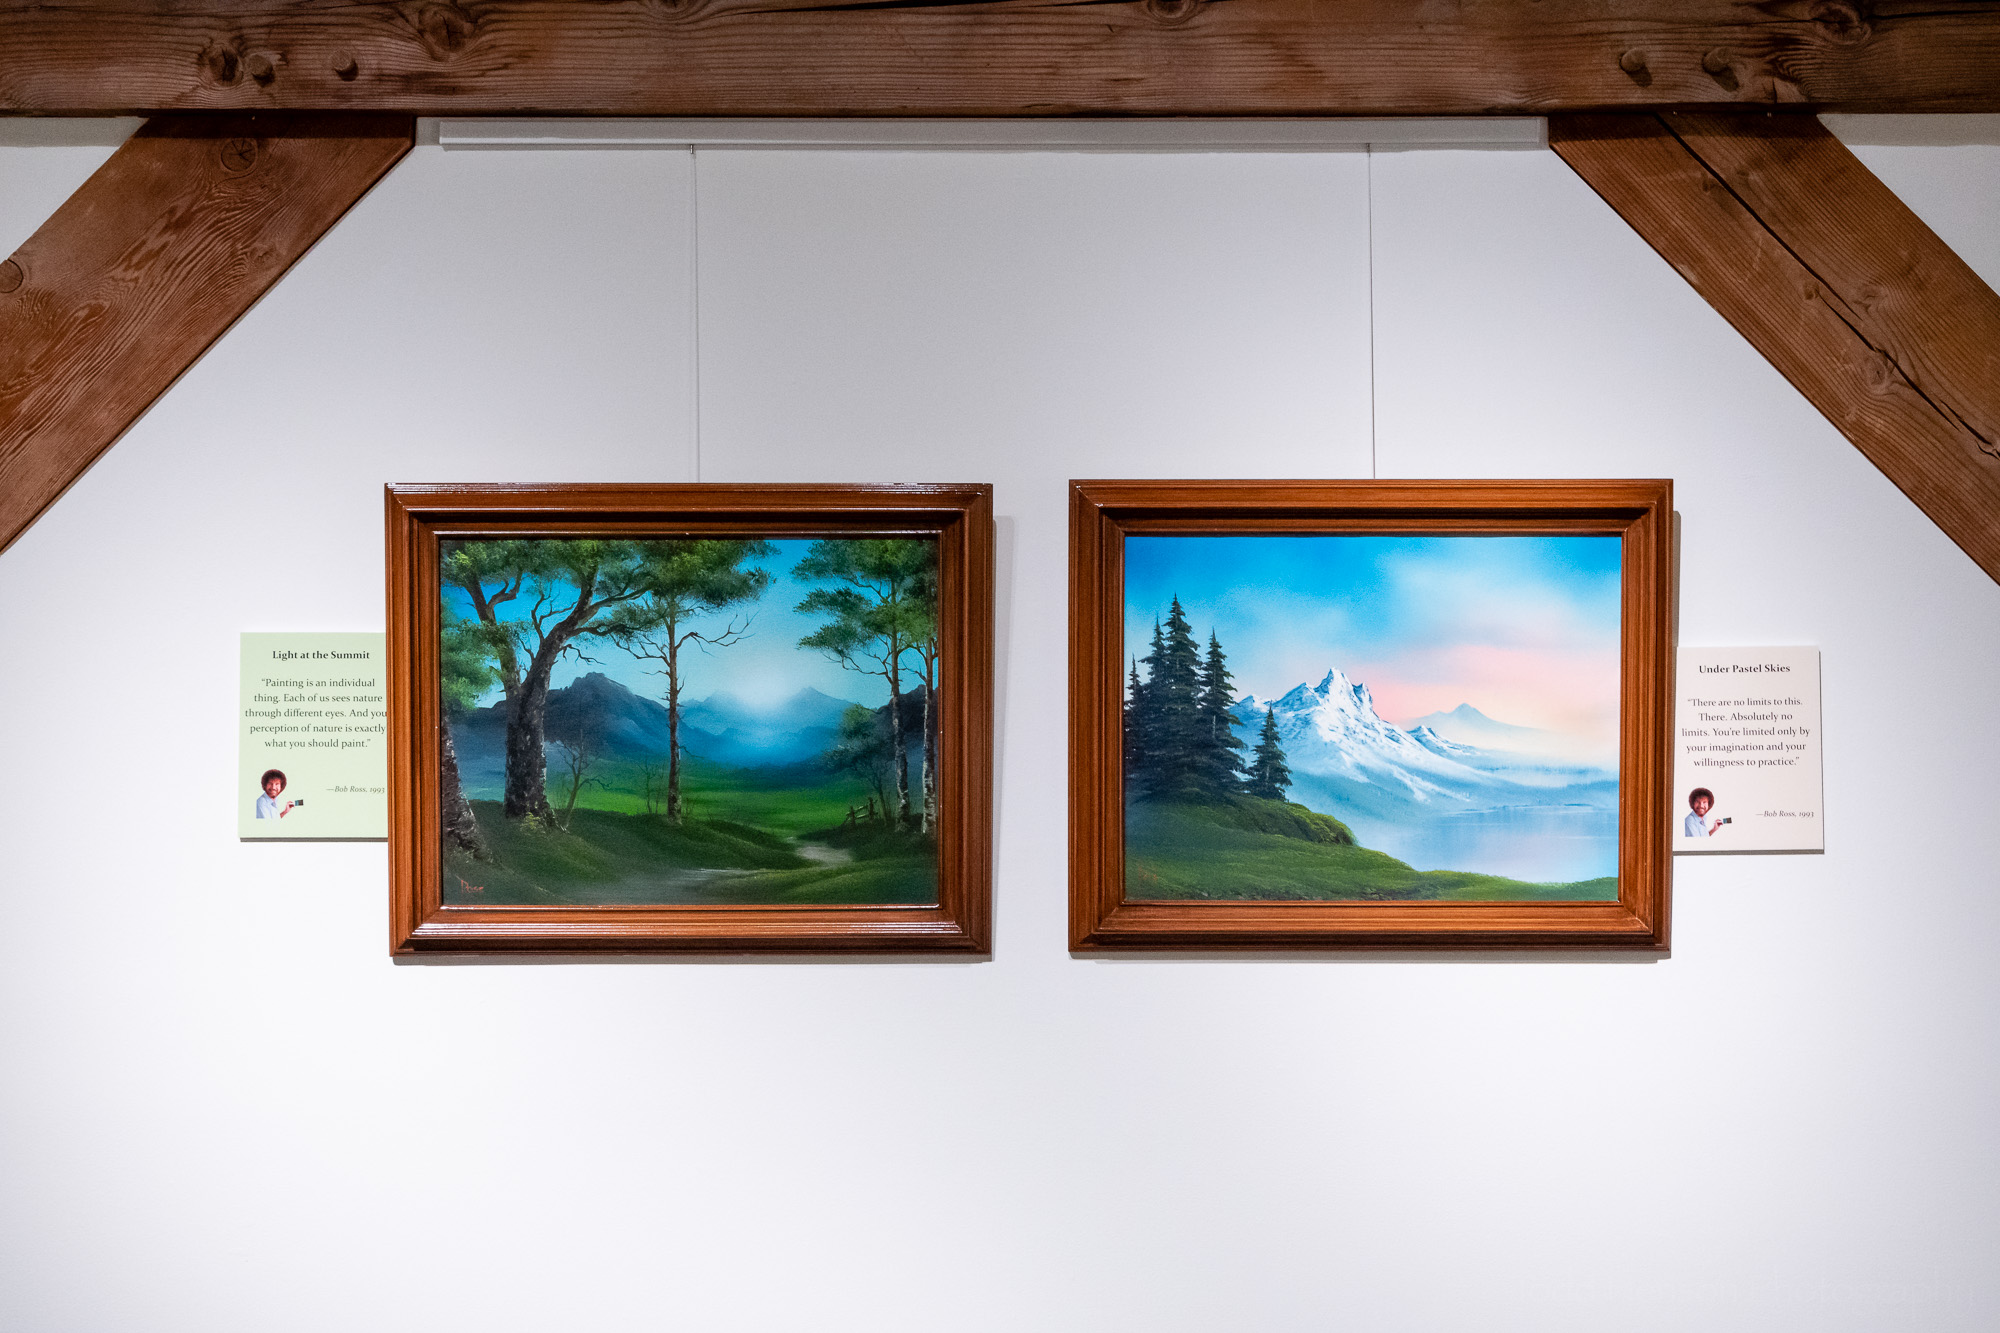 Light at the Summit , and  Under Pastel Skies , original oil paintings by Bob Ross, exhibited at Franklin Park Arts Center